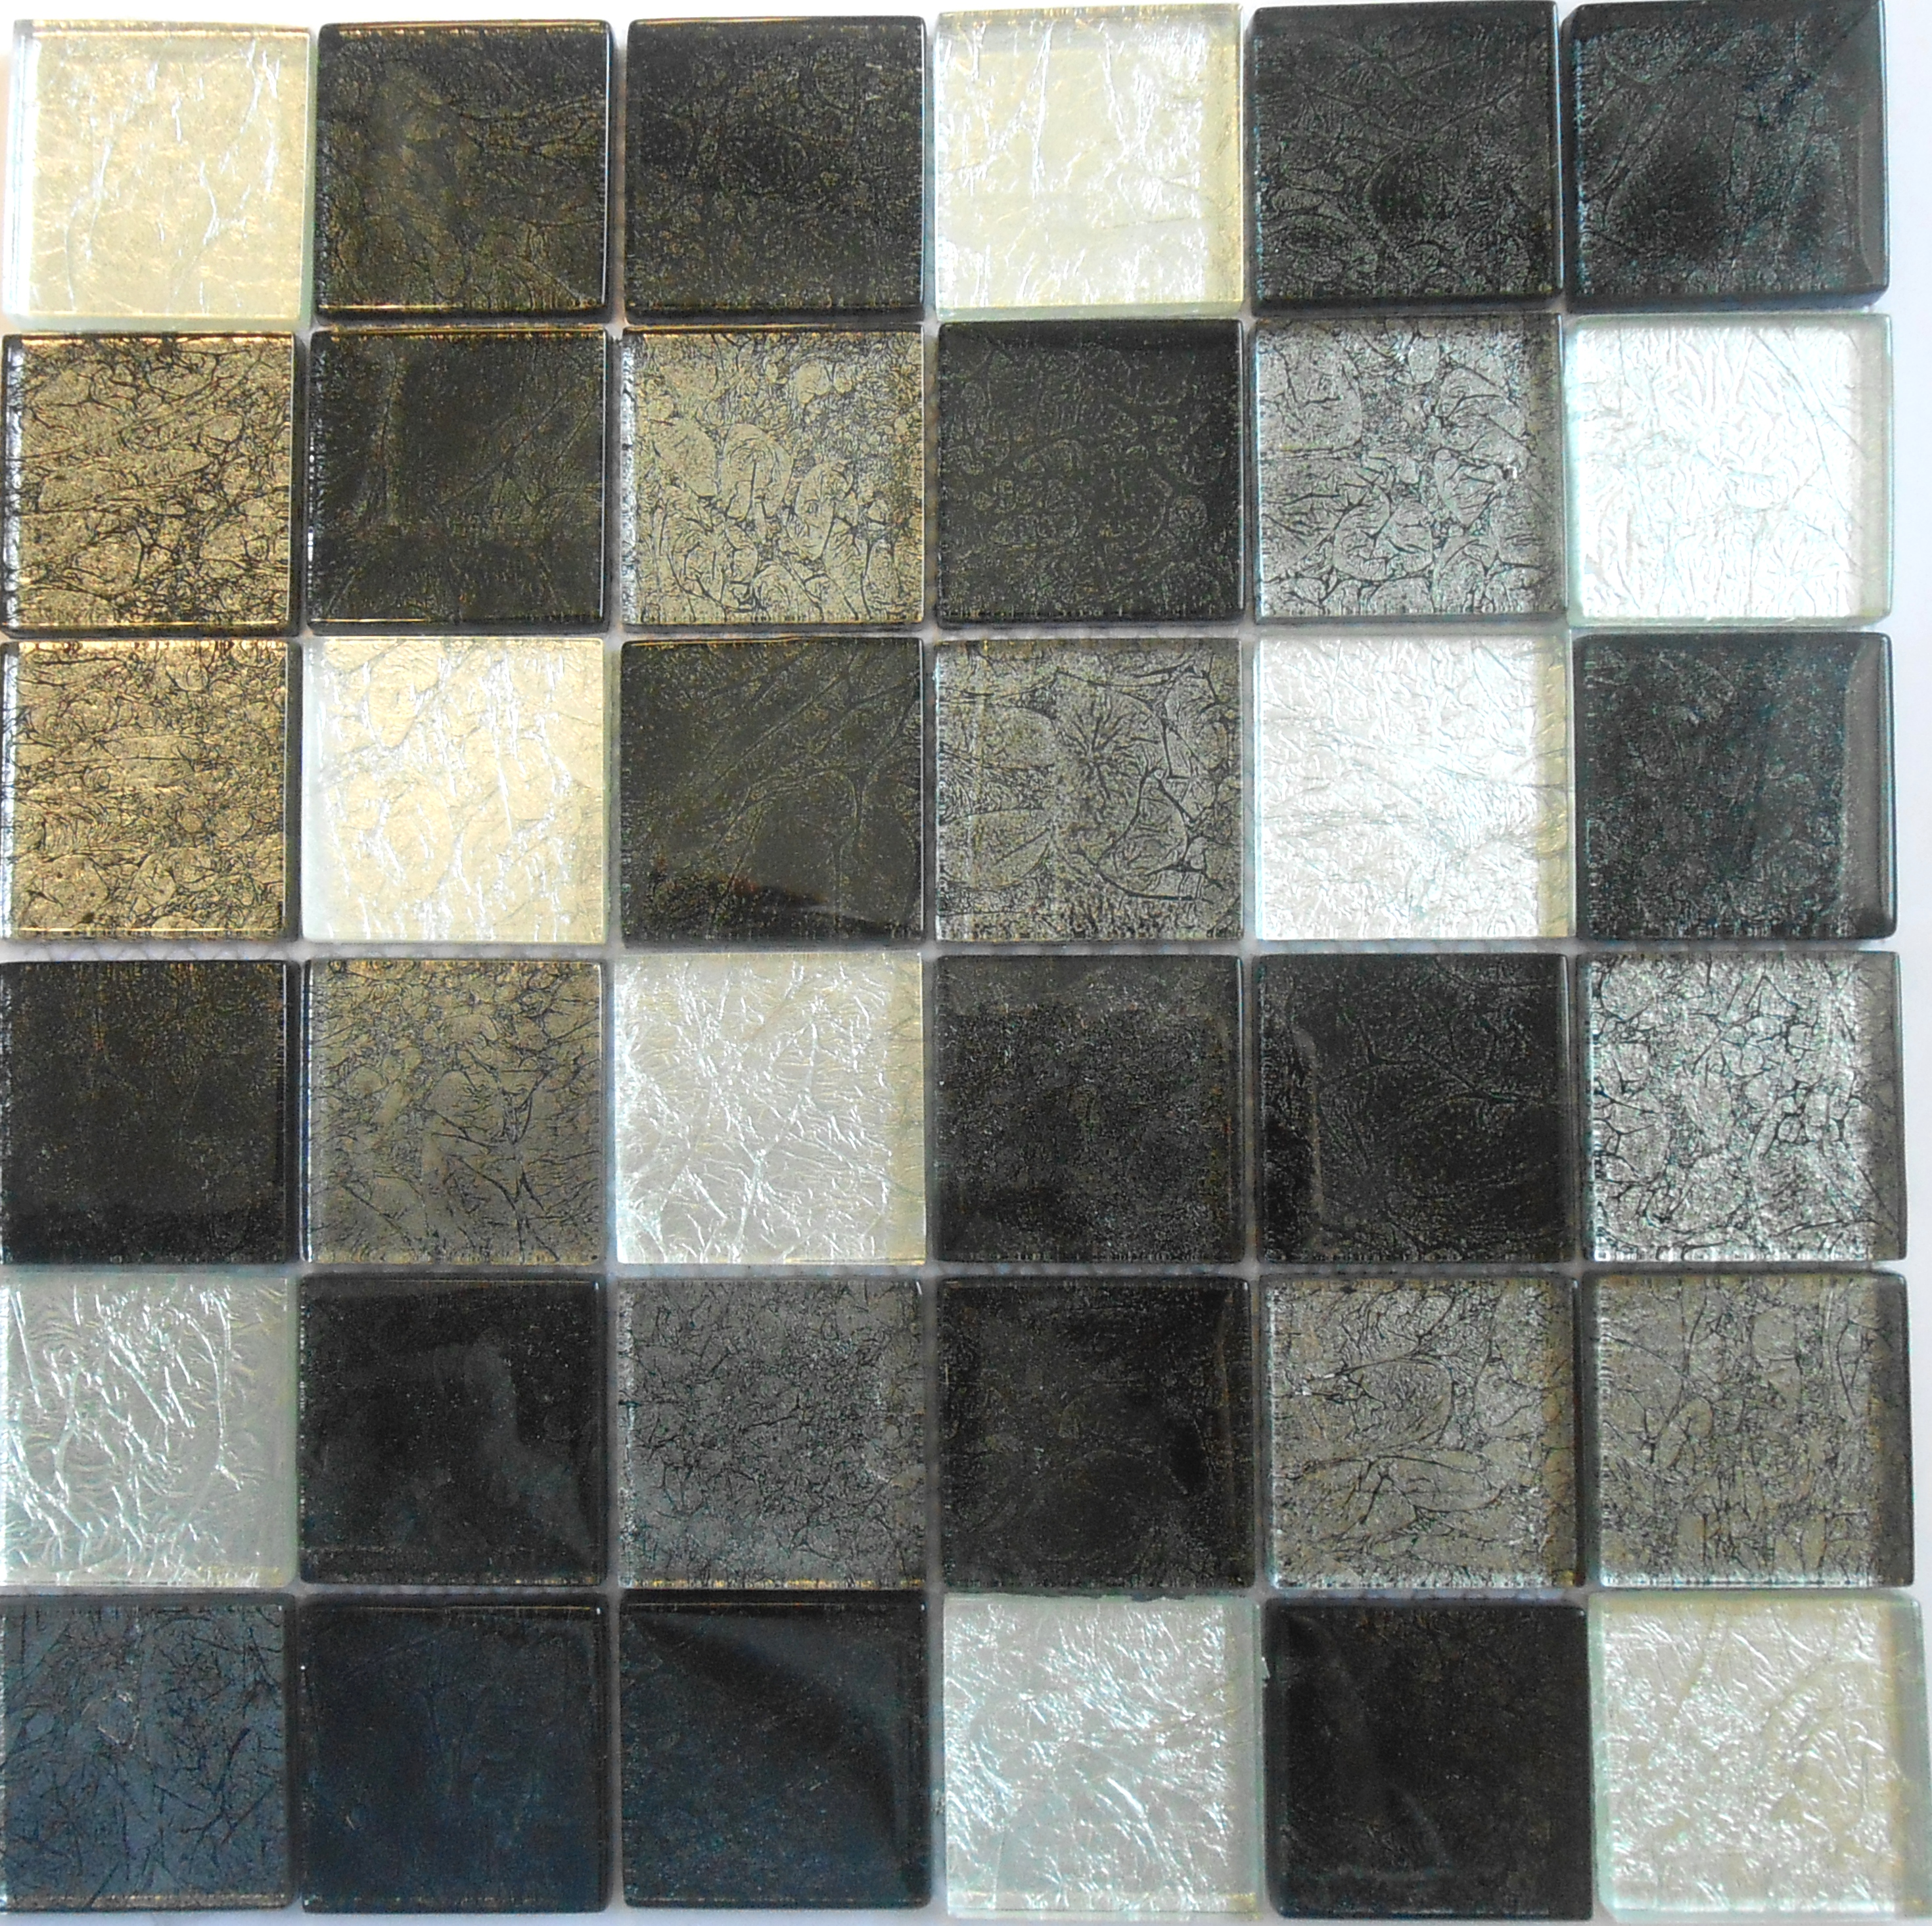 Galaxy star tiles 30 x 30 hebrides mosaic tiles from roccia galaxy star galaxy star dailygadgetfo Image collections